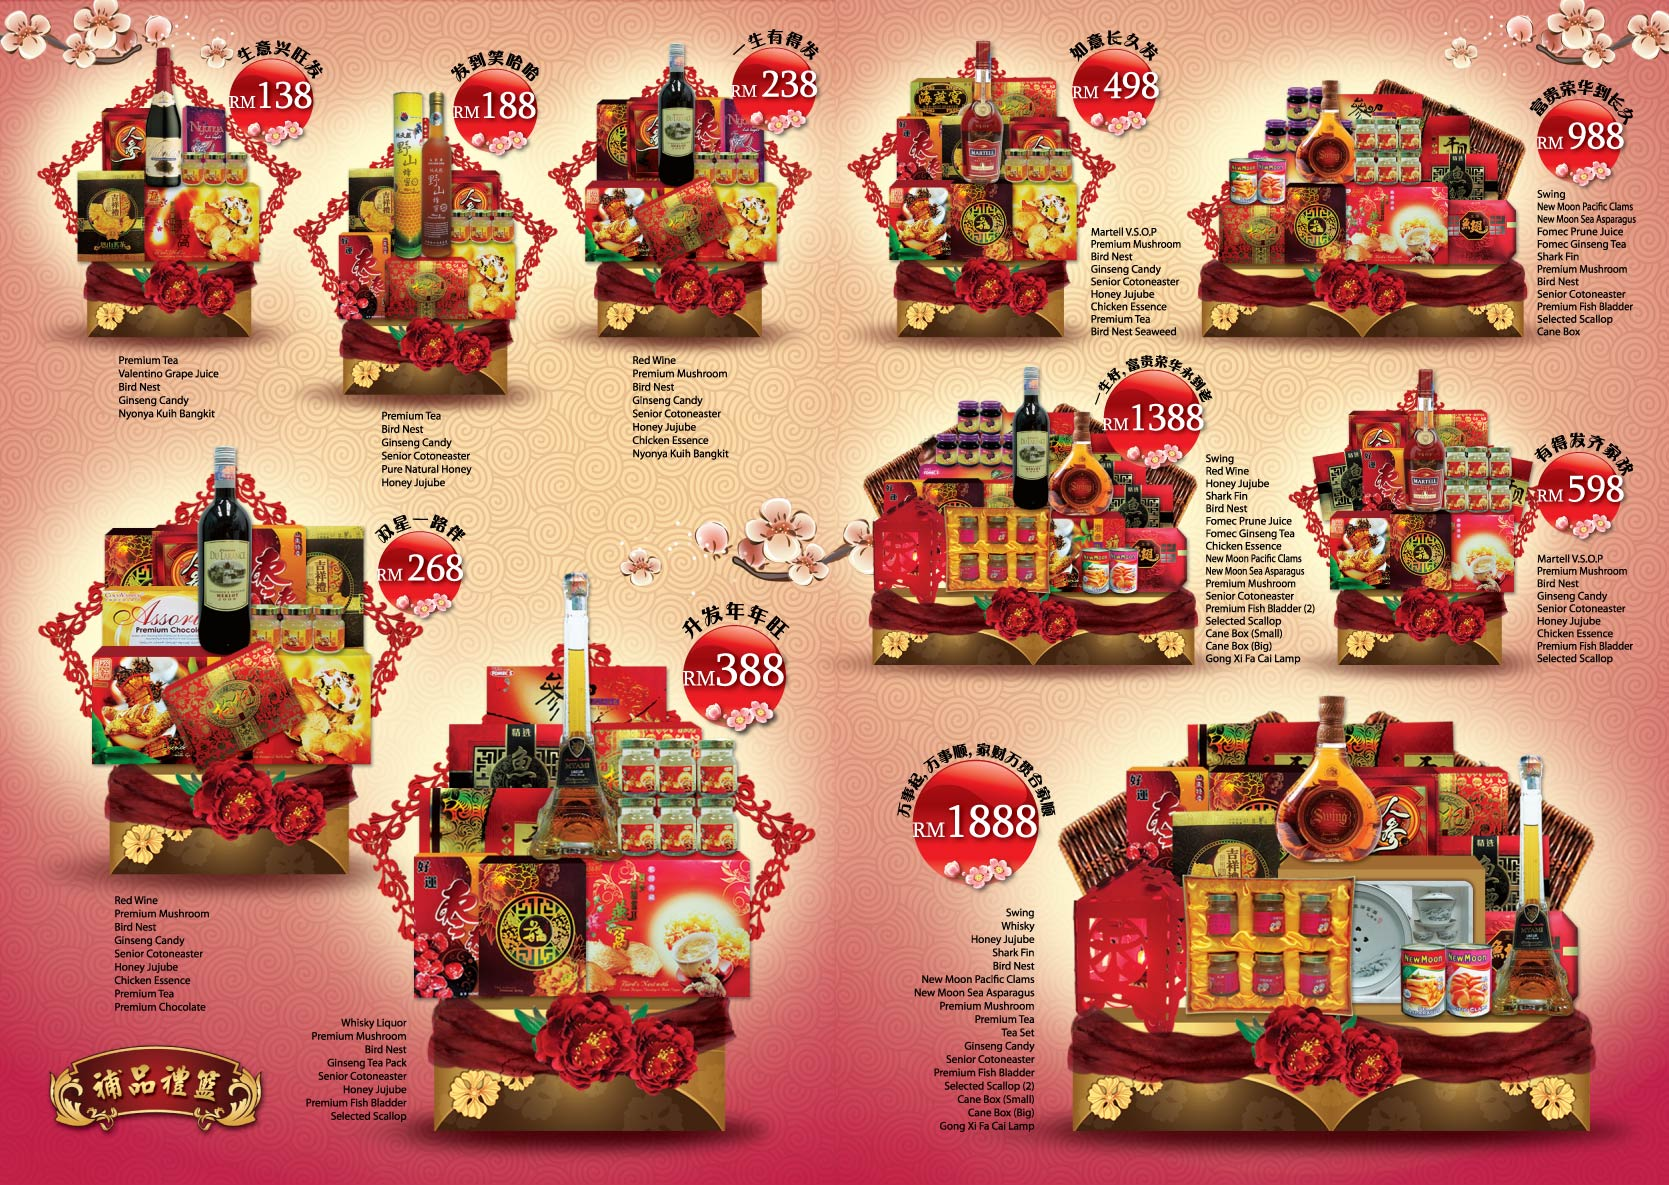 Peah-Ching's Chinese New Year 2012 hampers (click to enlarge)